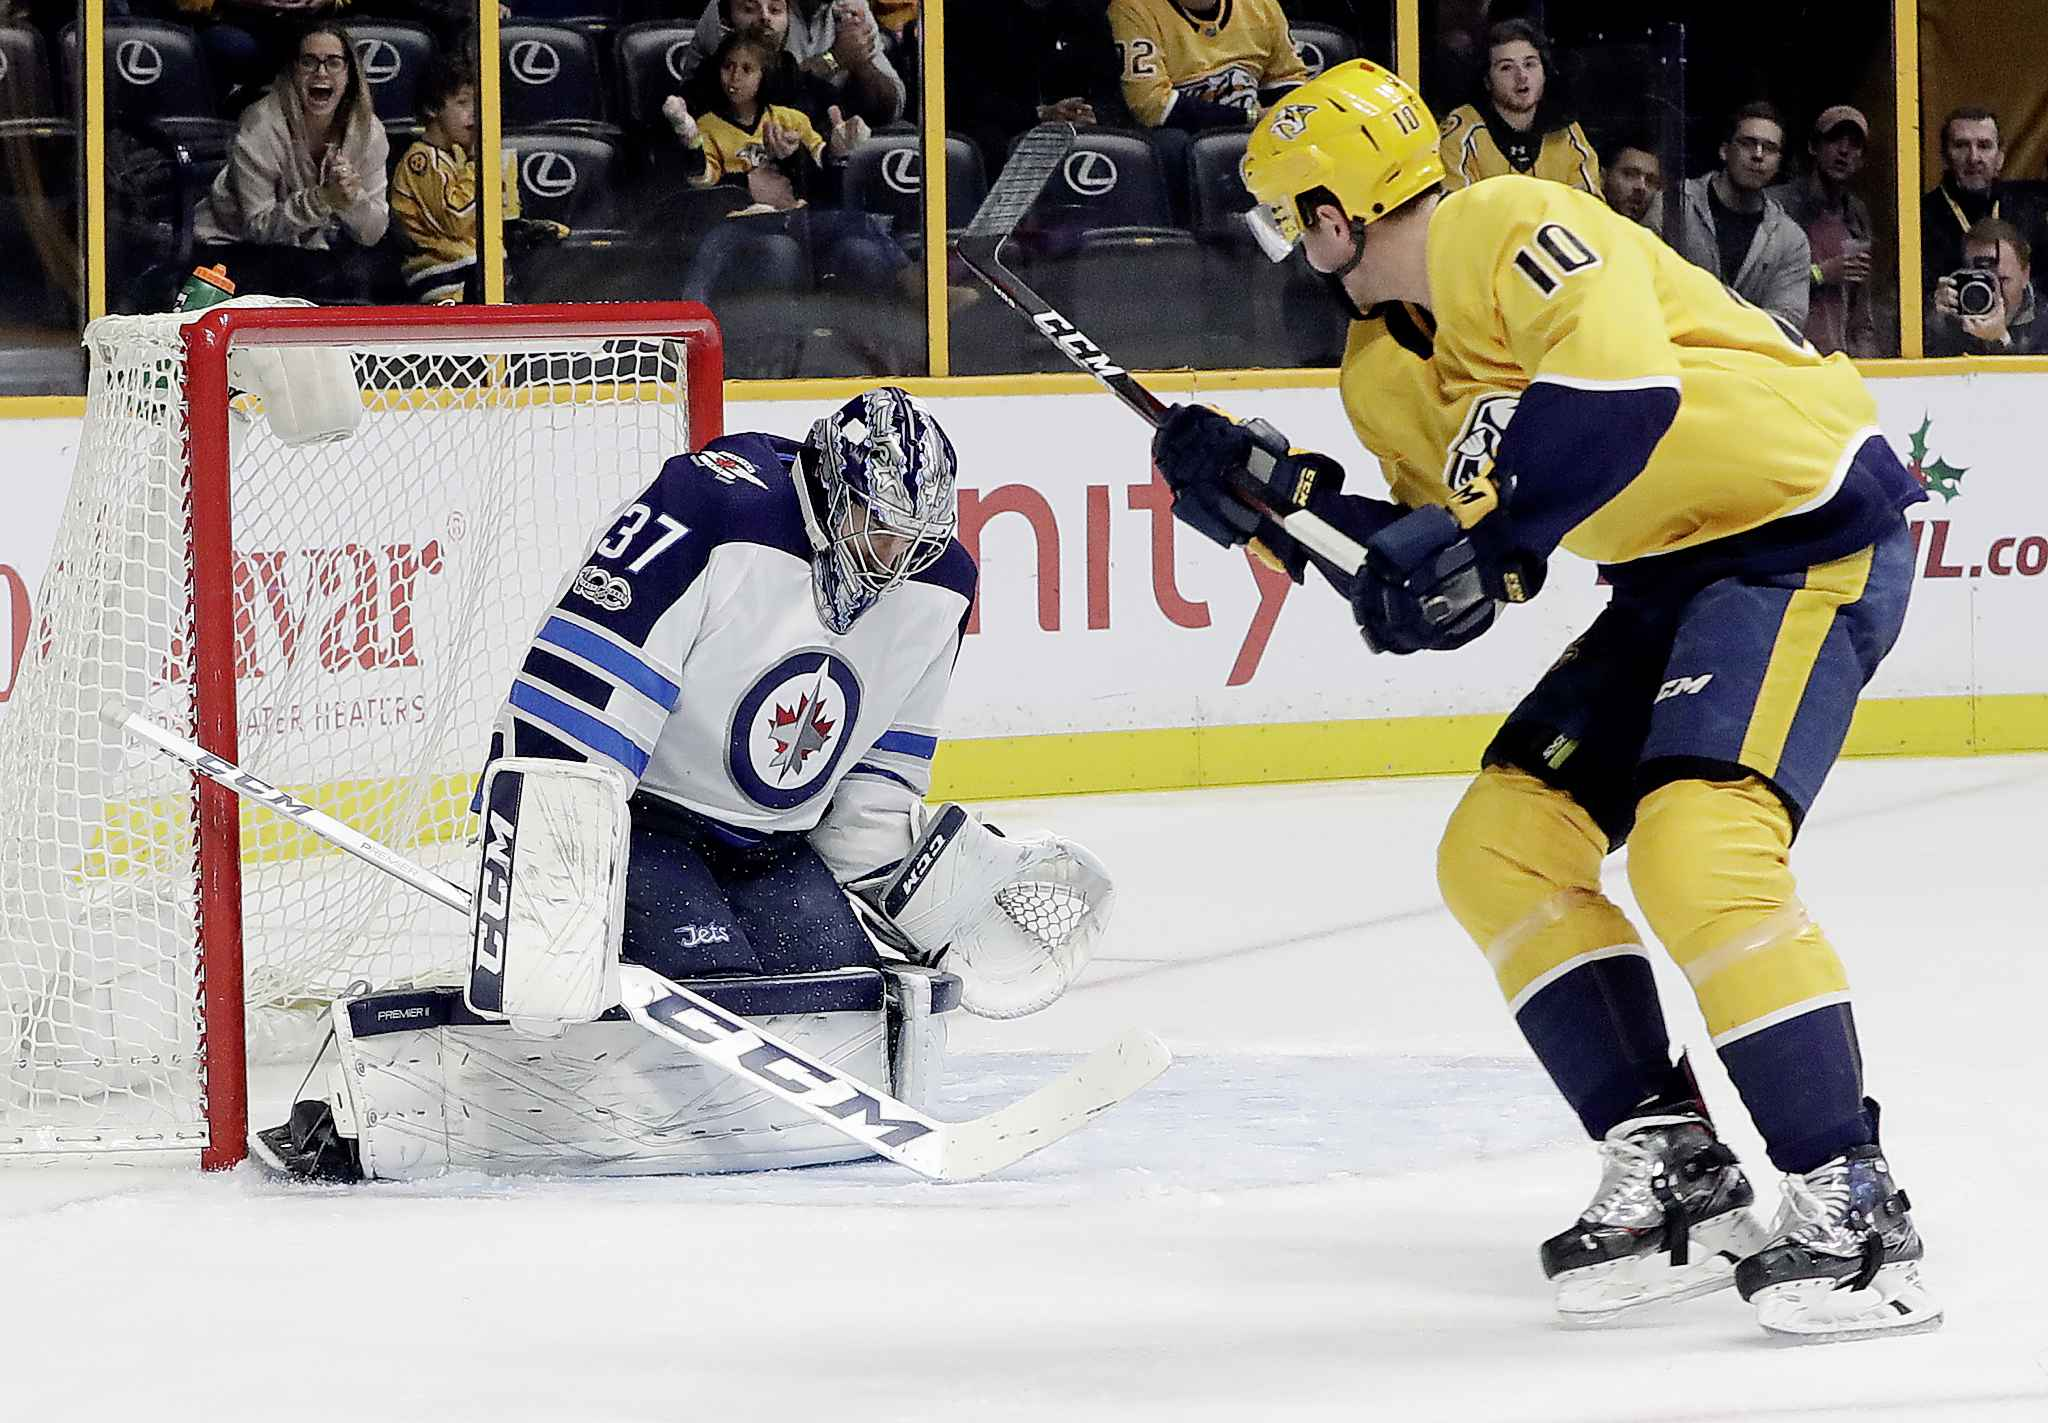 Winnipeg Jets goalie Connor Hellebuyck posted back-to-back shutouts to close out his team's first round series with the Wild.